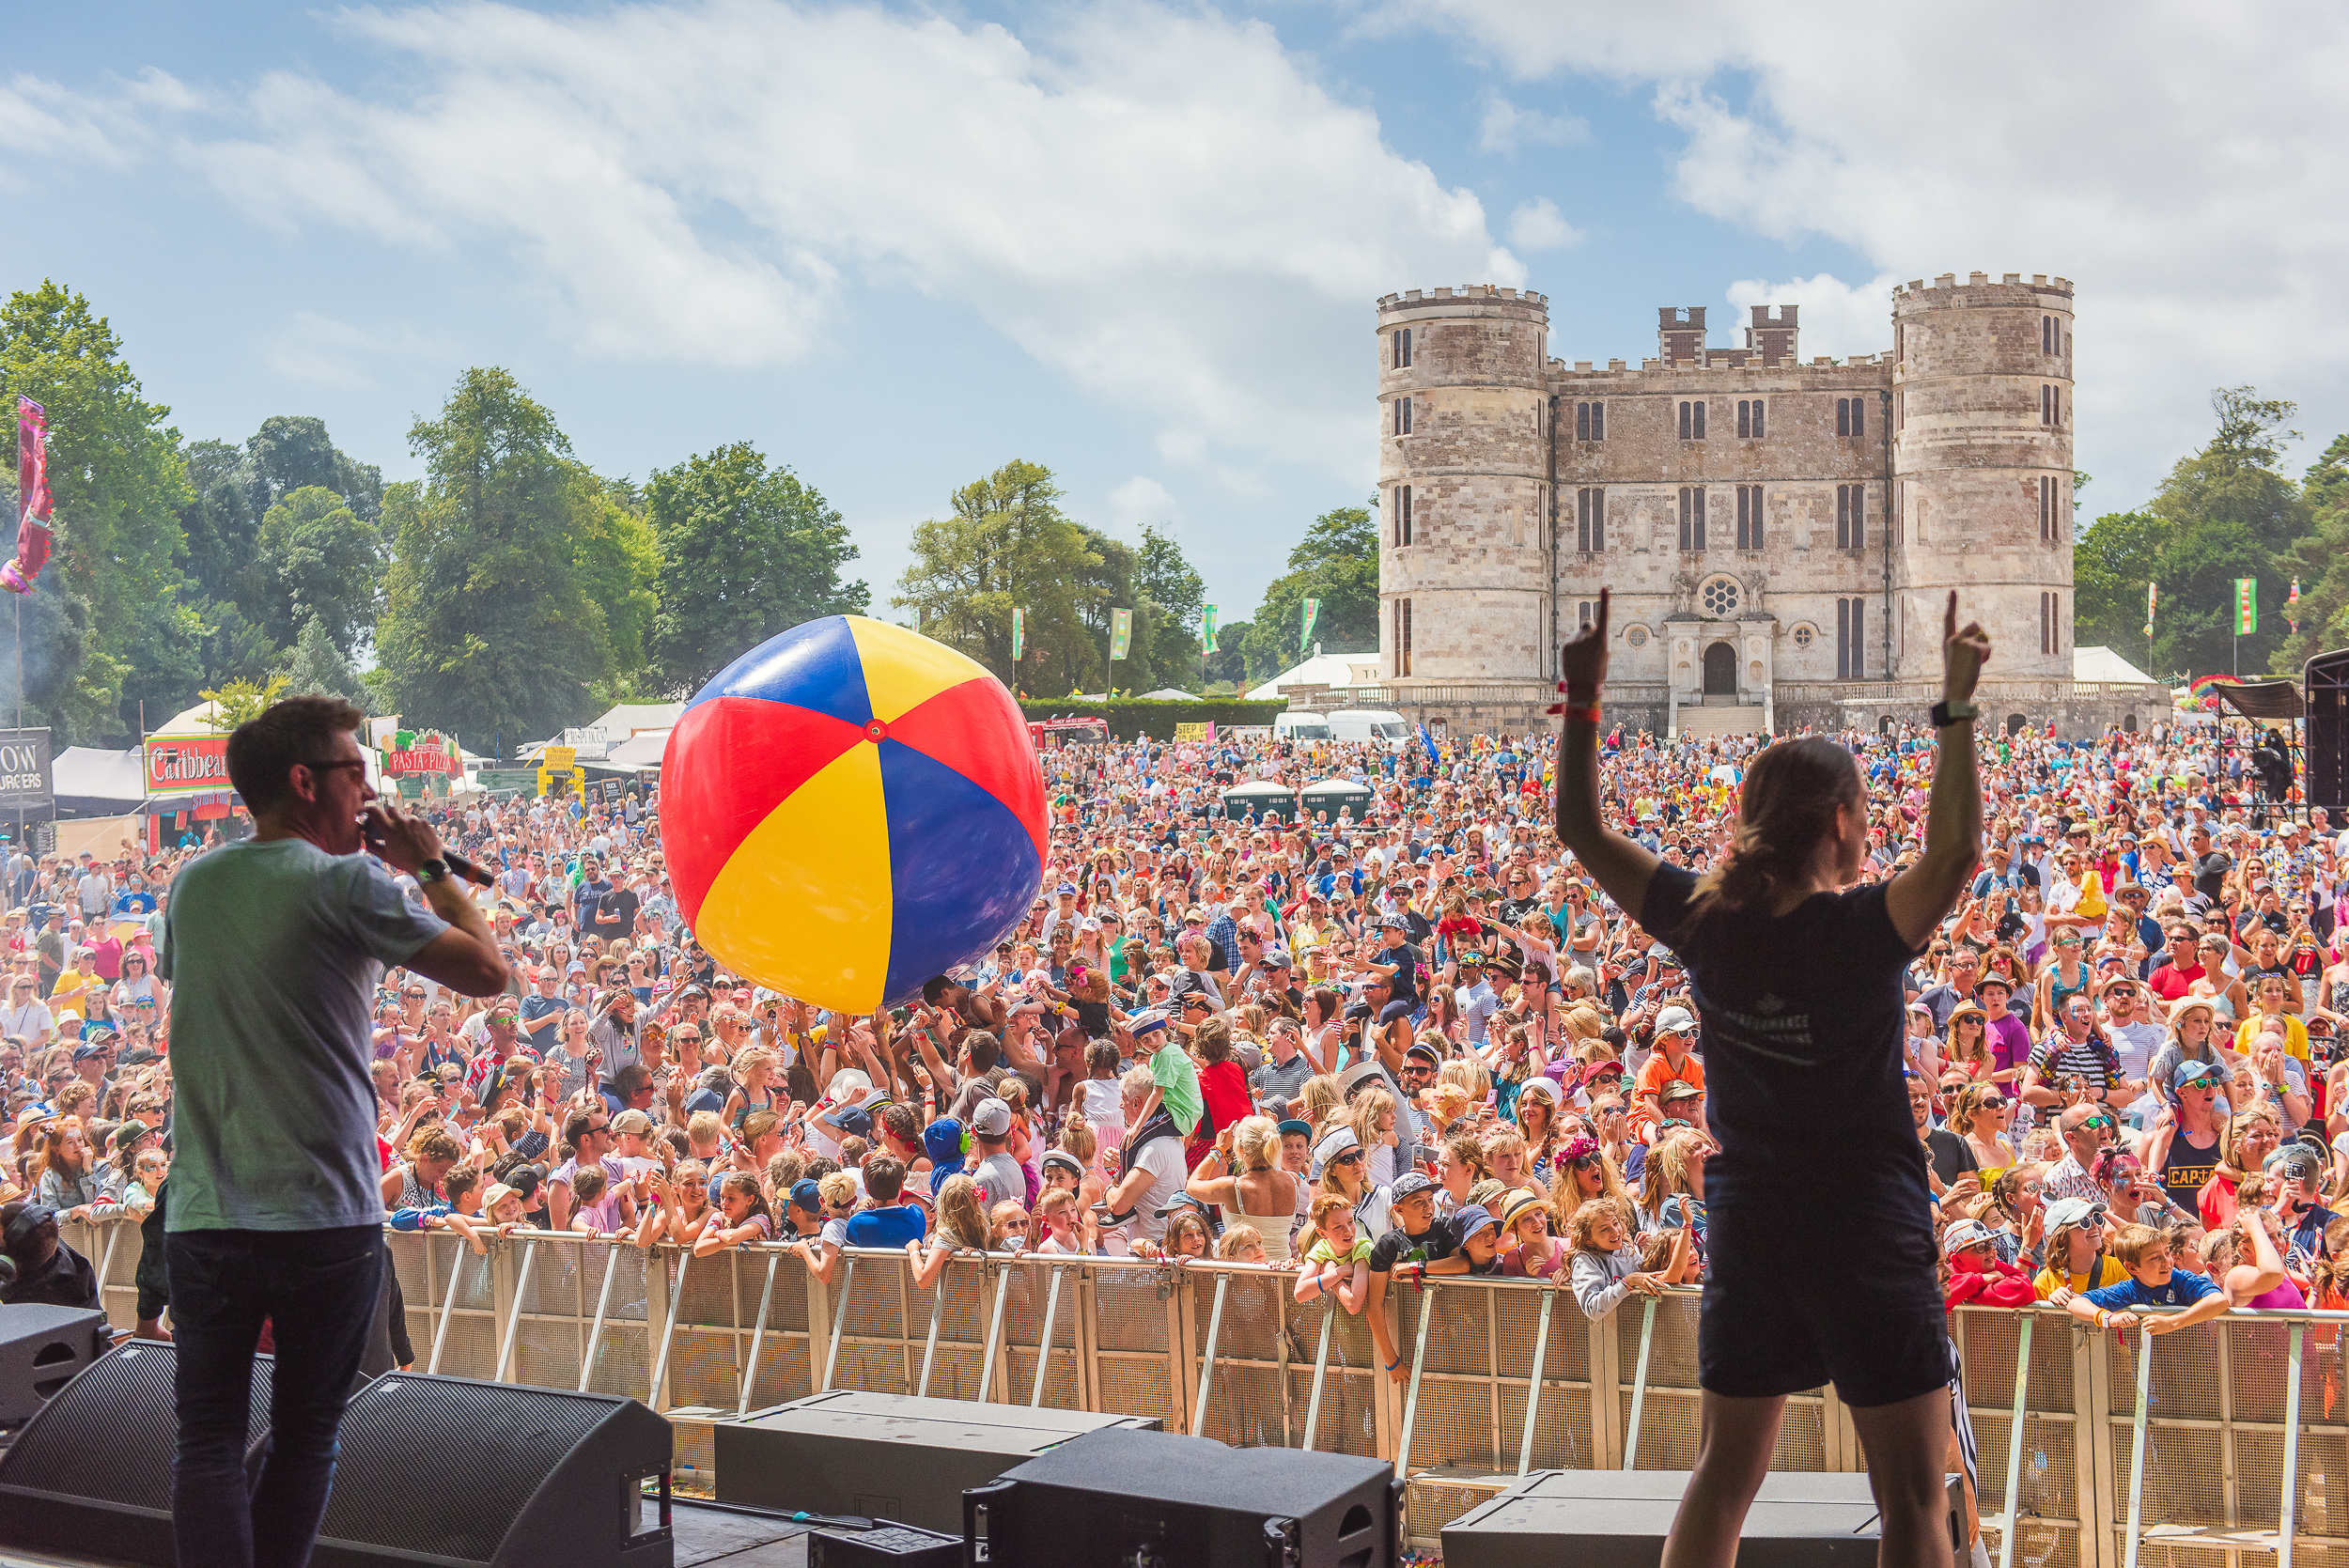 Camp Bestival 2018 Review - Dick and Dom